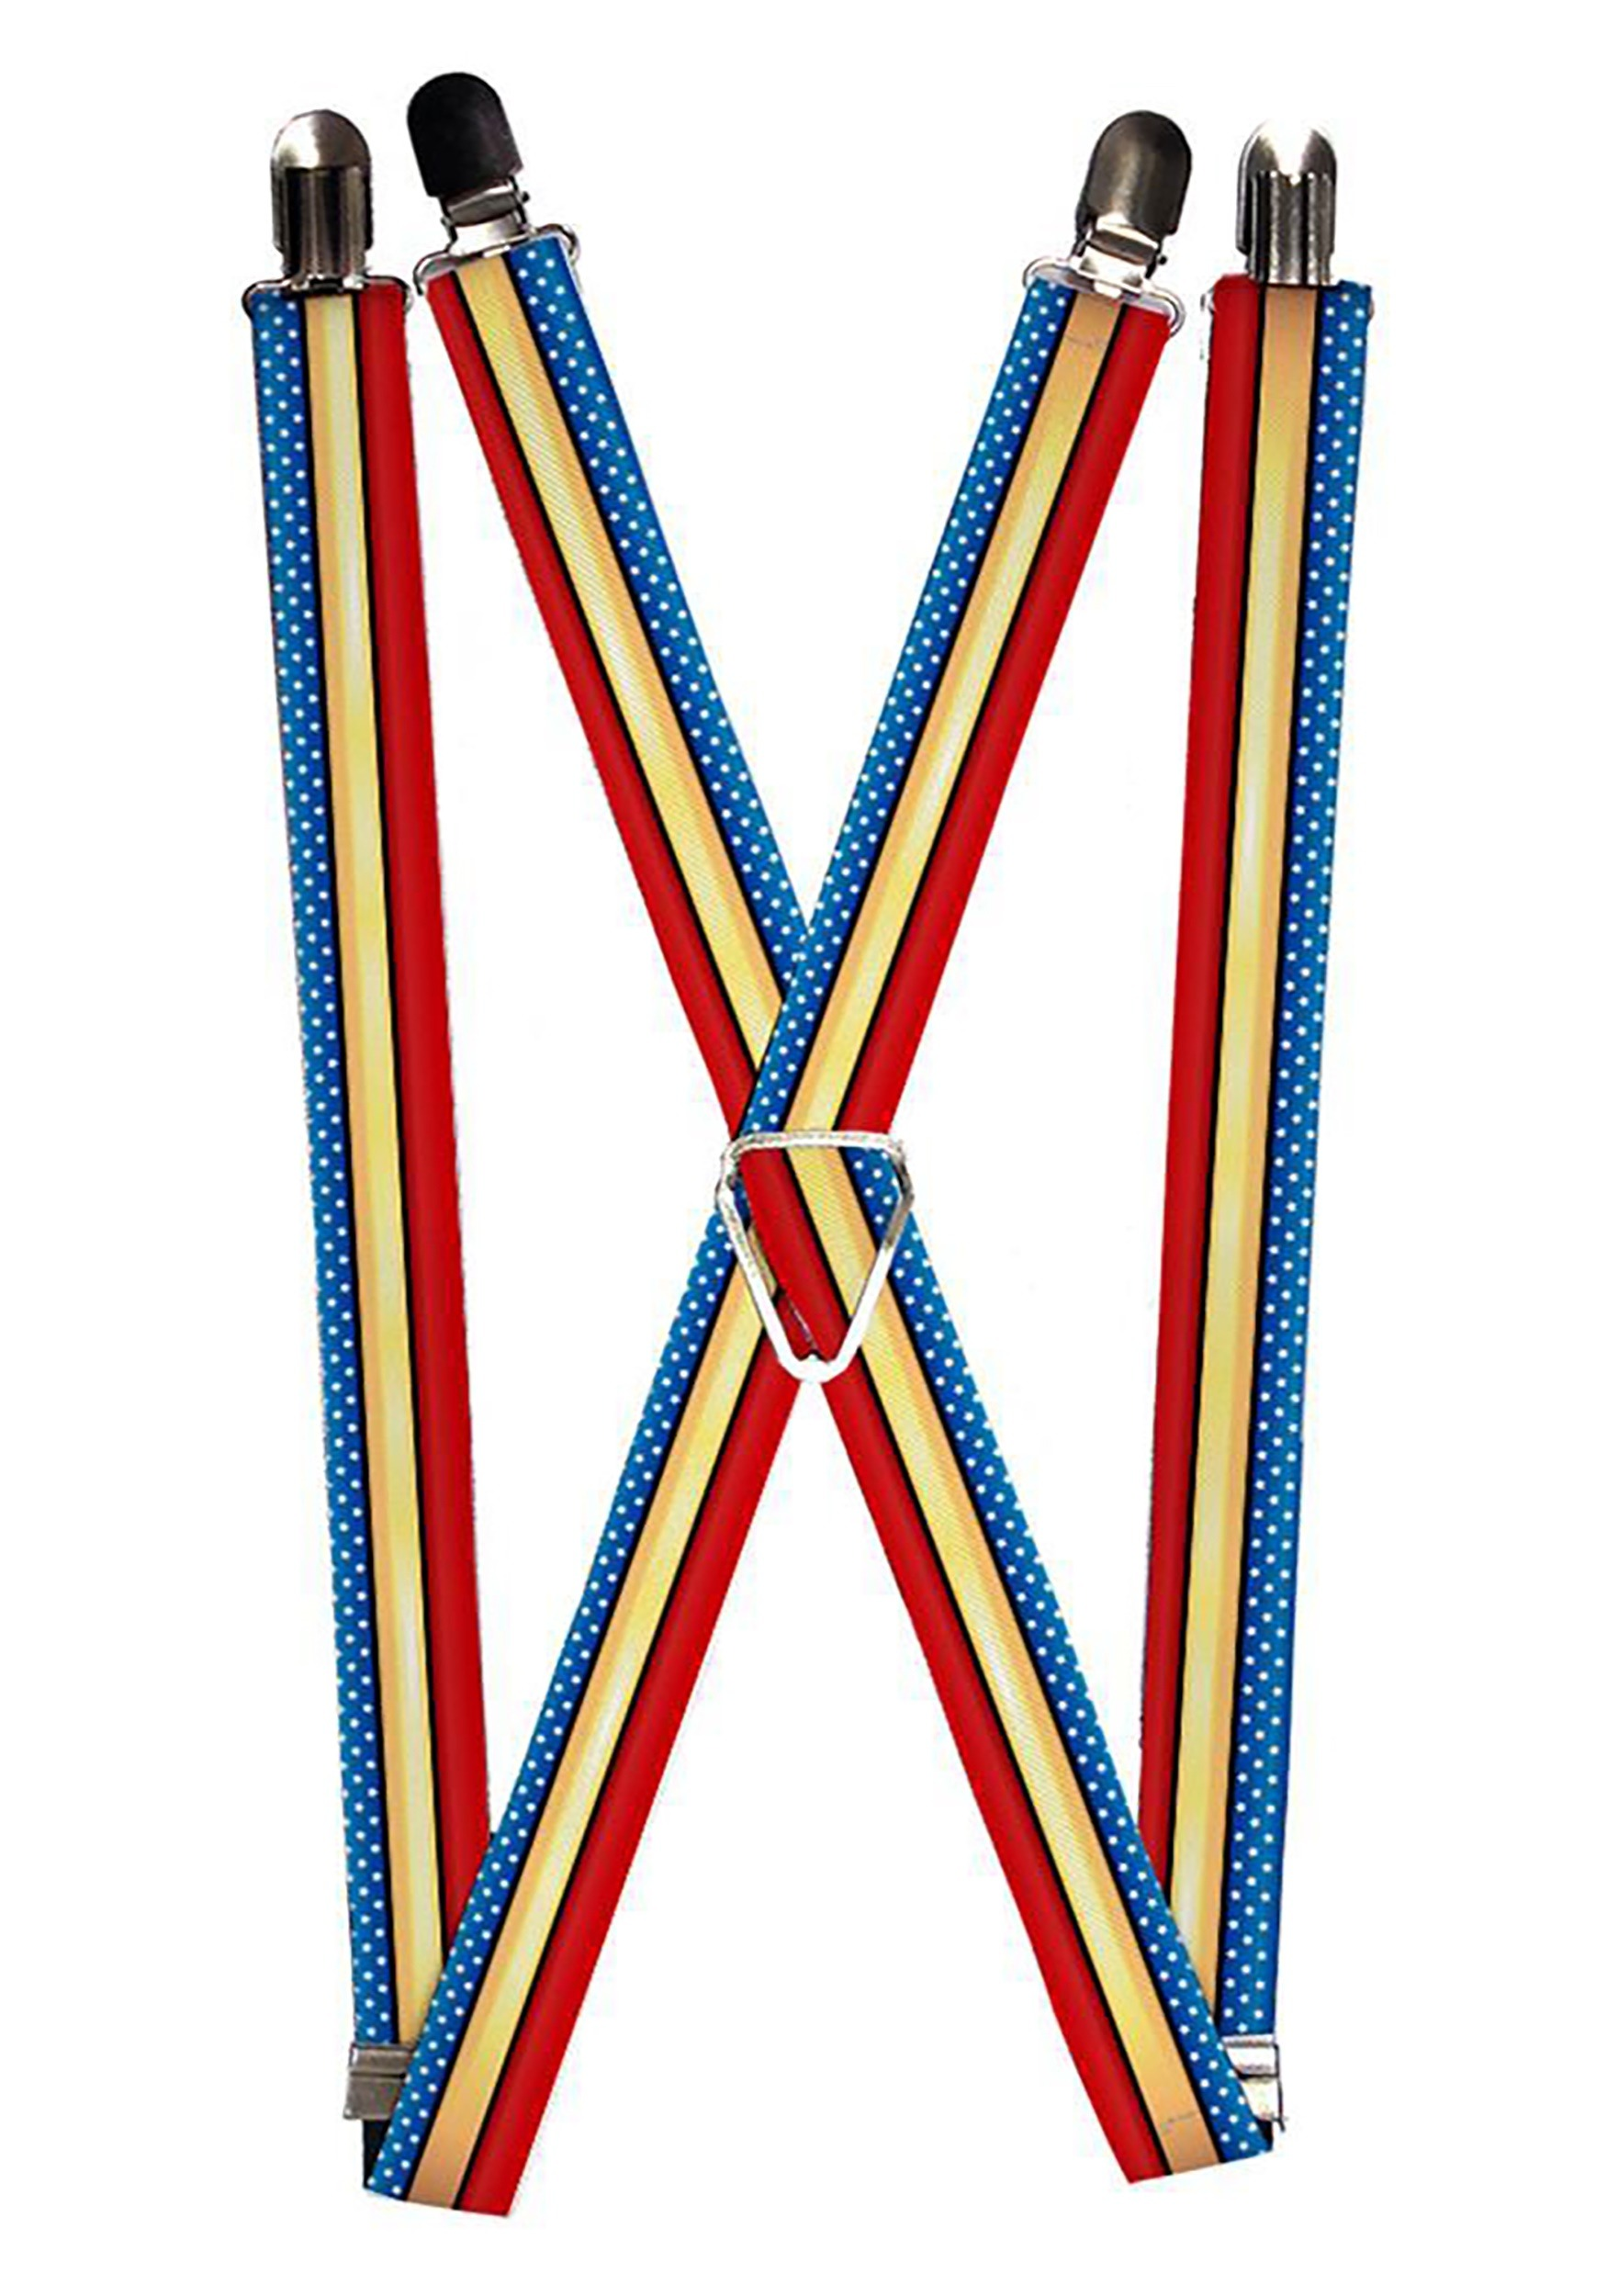 1_Suspenders_Wonder_Woman_Stars_and_Stripes